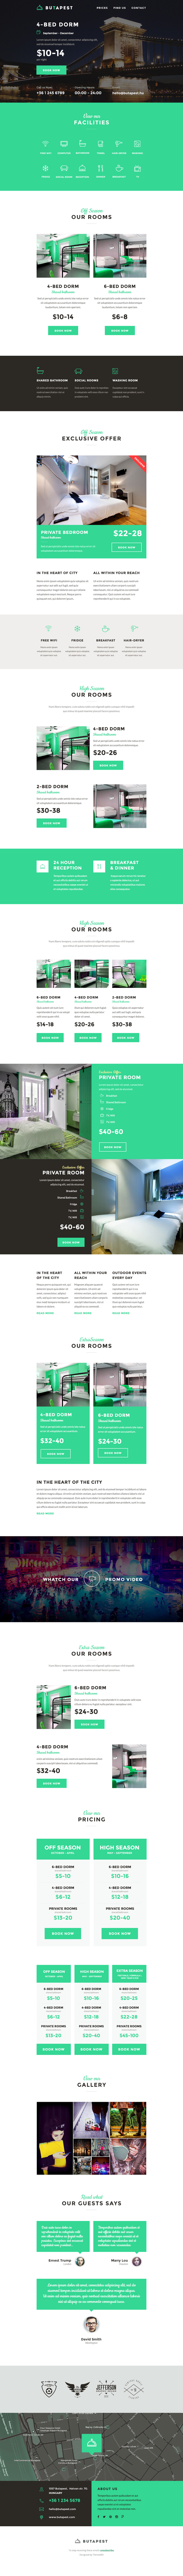 ButaPest- Hotel/Hostel Email Template Assists In Effective Email Marketing